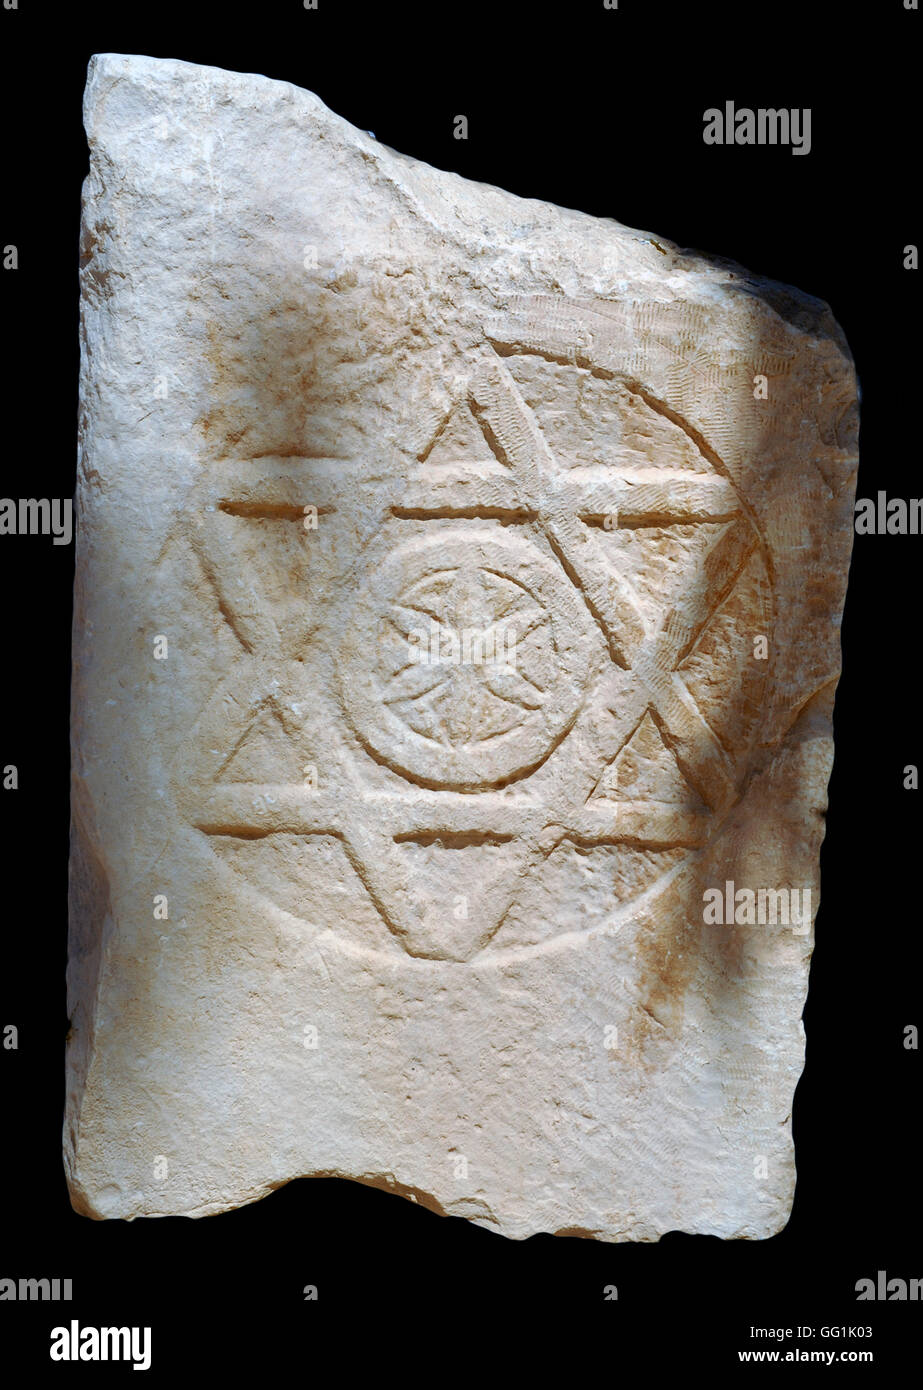 5888. Lintel from a building found at Tell es-Simadi, decorated with the Star of David - Stock Image